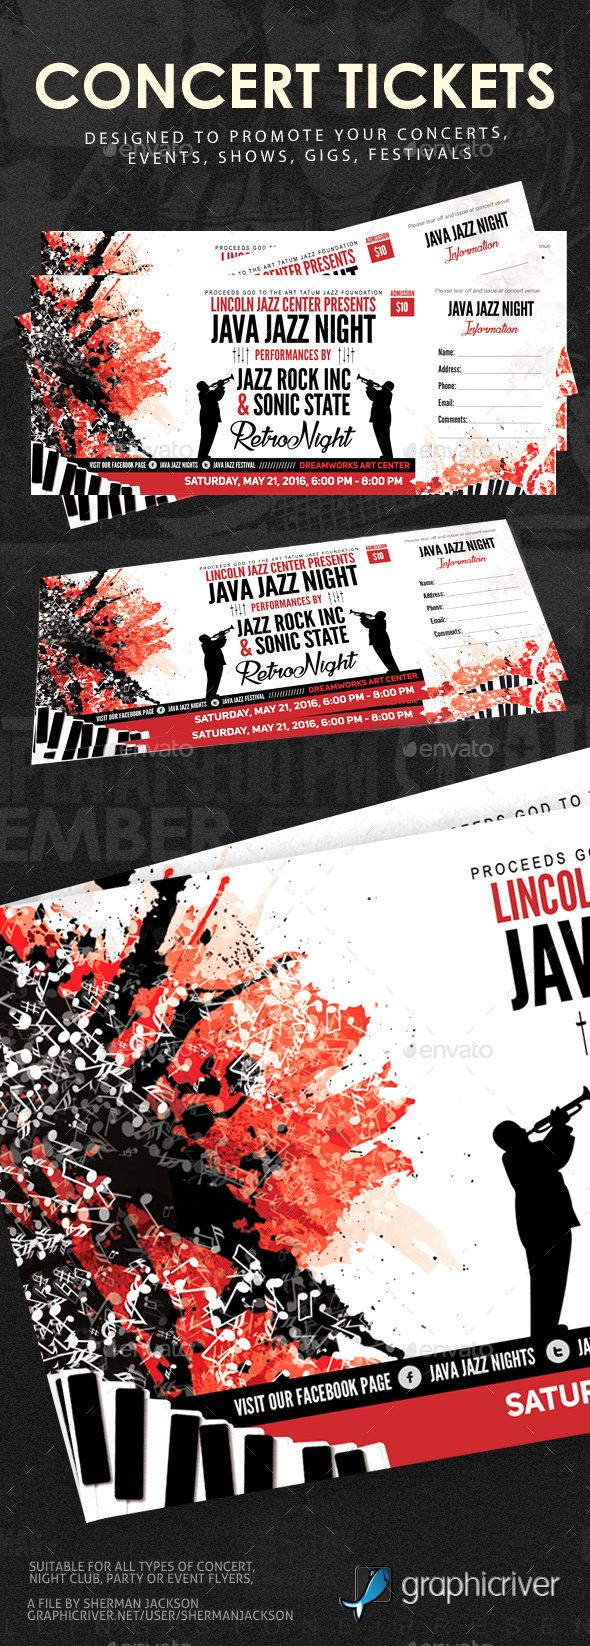 Concert Event Tickets Template PSD. Download here: https://graphicriver.net/item/concert-event-tickets/15554136?ref=ksioks